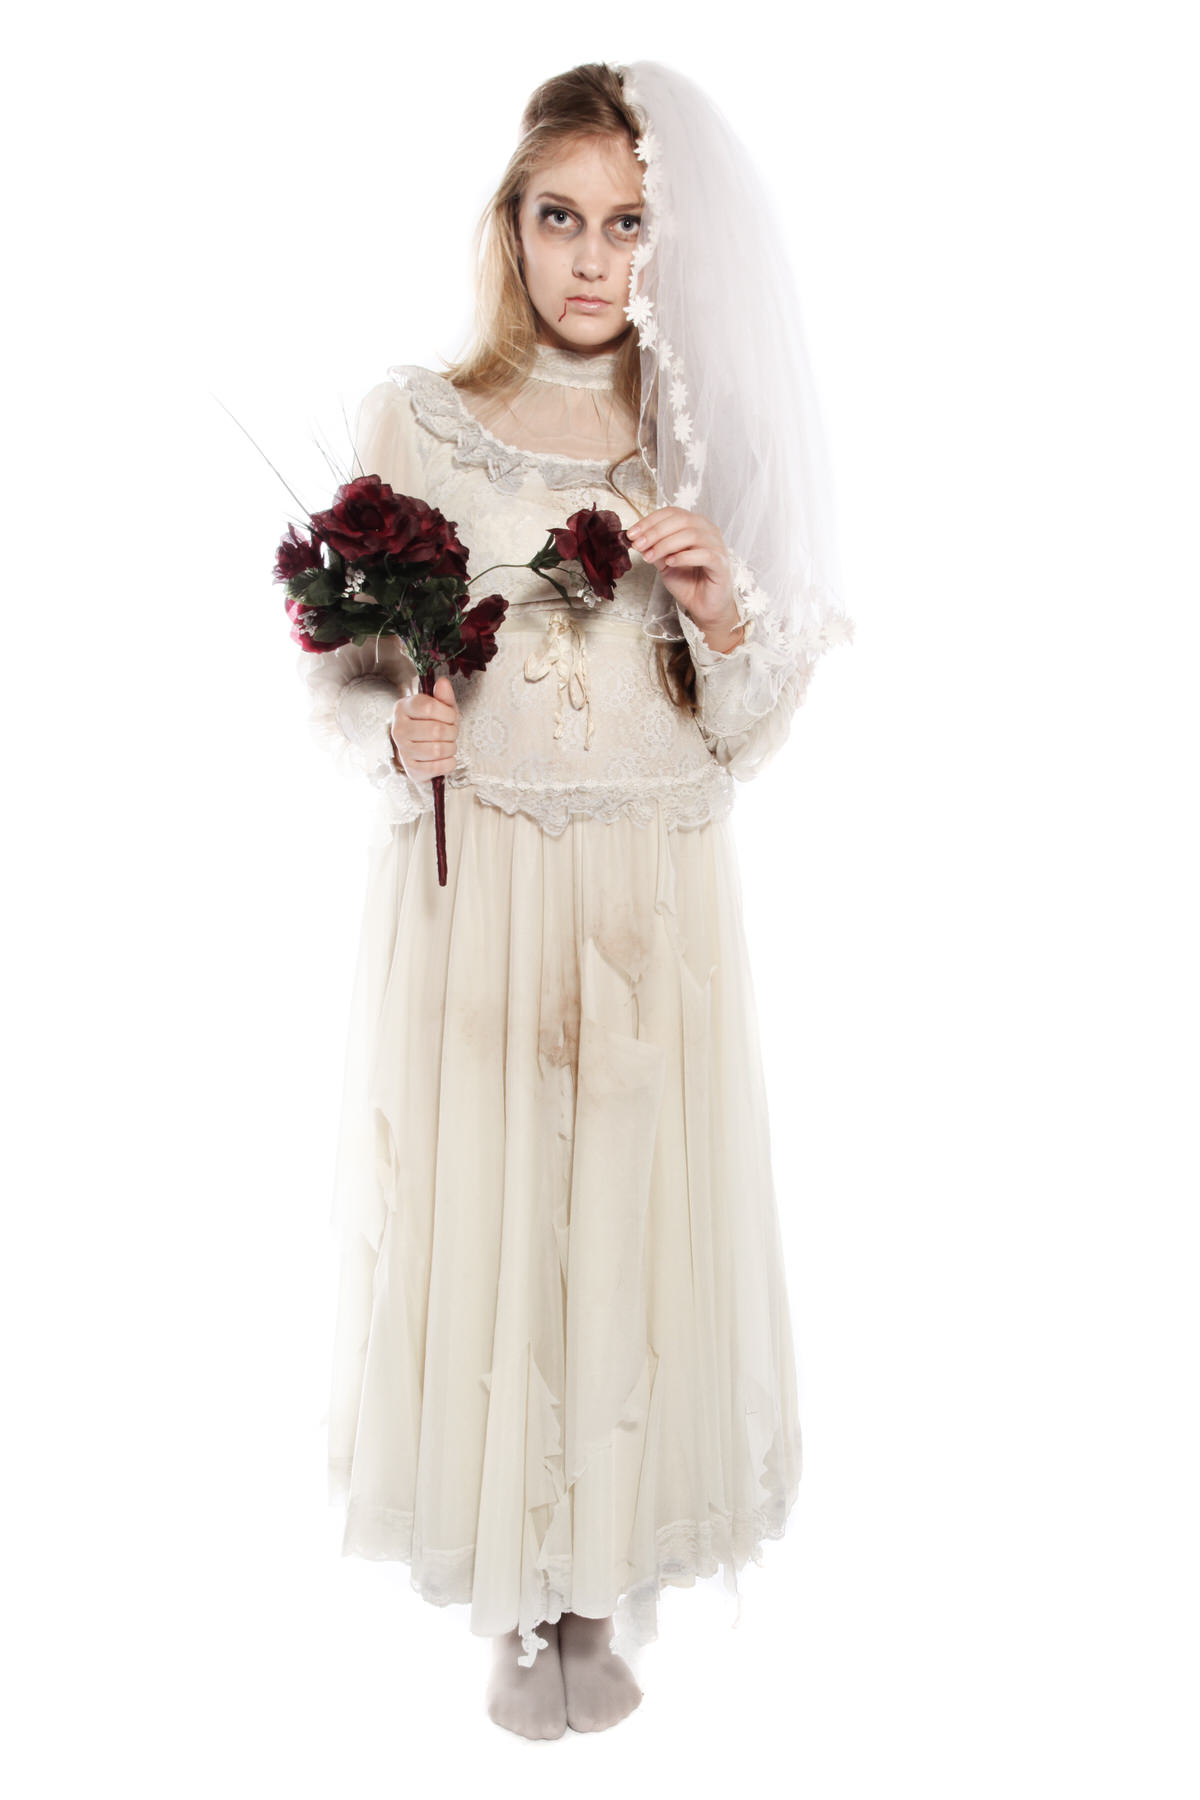 DEAD BRIDE WEDDING DRESS AND VEIL COSTUME